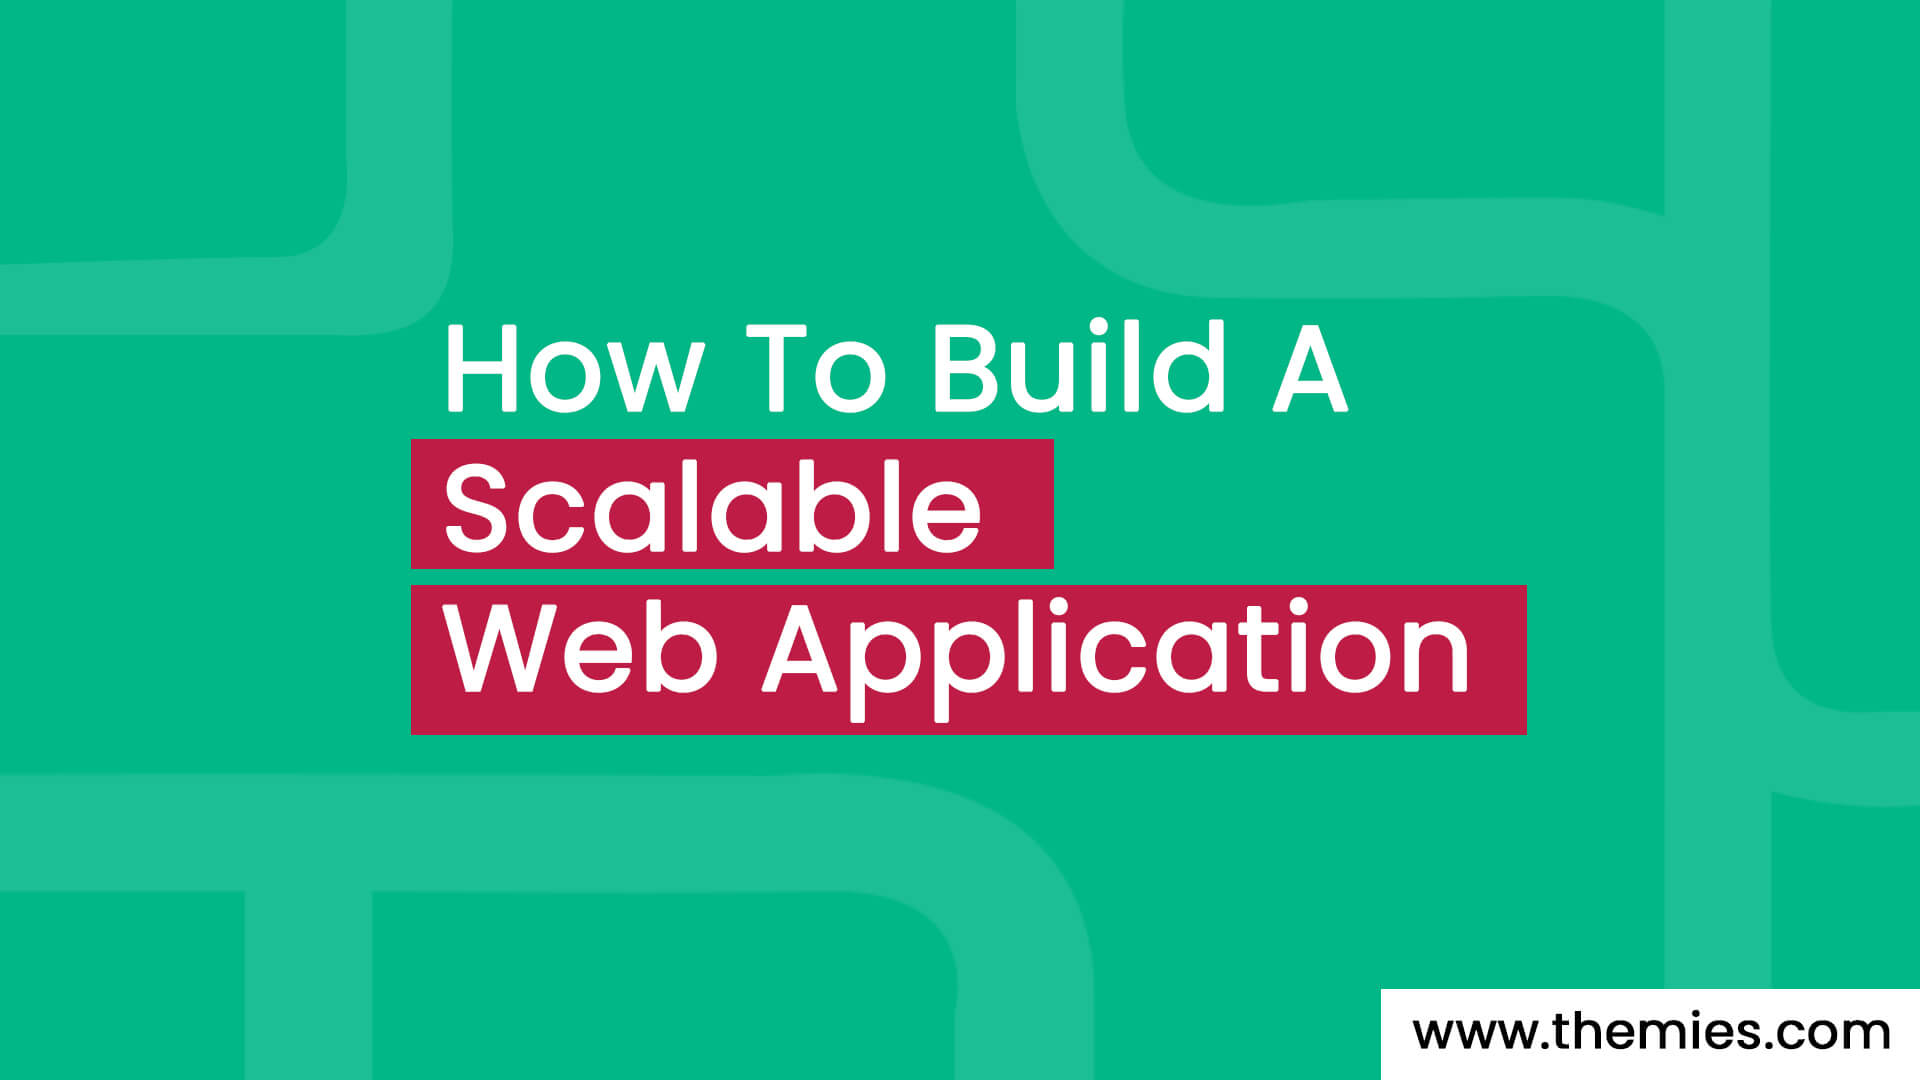 How To Build A Scalable Web Application?